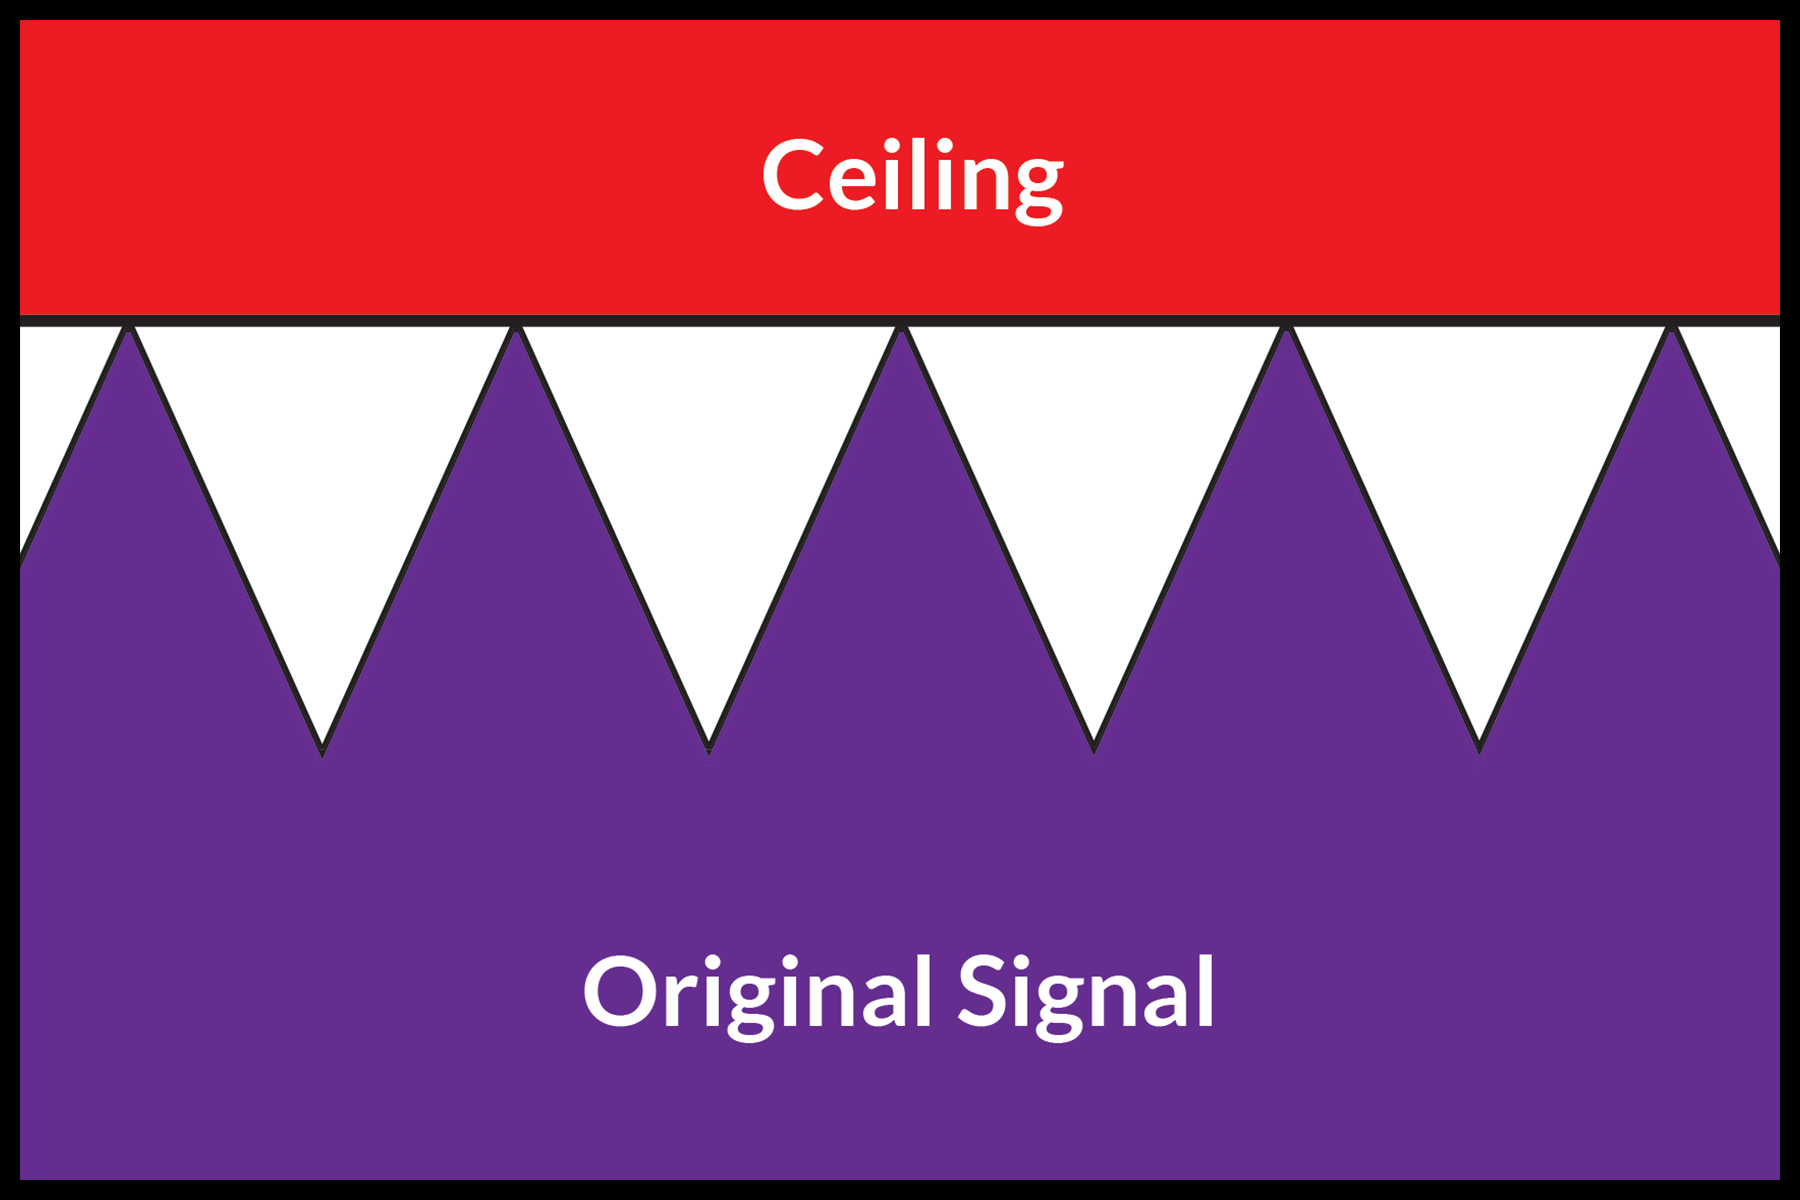 A dynamic audio signal peaking at digital maximum.